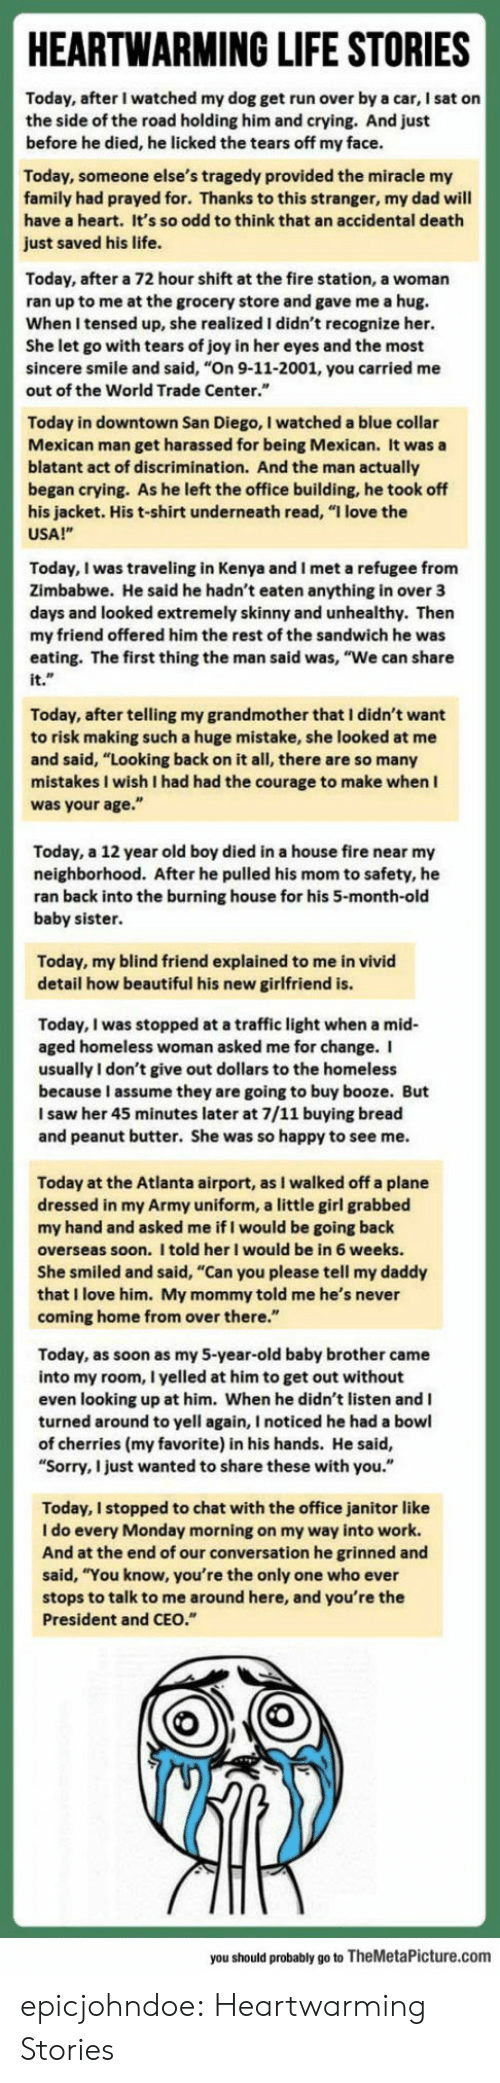 """7/11, 9/11, and Beautiful: HEARTWARMING LIFE STORIES  Today, after I watched my dog get run over by a car, I sat on  the side of the road holding him and crying. And just  before he died, he licked the tears off my face.  ay, someone else's tragedy provided the miracle my  family had prayed for. Thanks to this stranger, my dad will  have a heart. It's so odd to think that an accidental death  just saved his life.  Today, after a 72 hour shift at the fire station, a woman  ran up to me at the grocery store and gave me a hug.  When I tensed up, she realized I didn't recognize her.  She let go with tears of joy in her eyes and the most  sincere smile and said, """"On 9-11-2001, you carried me  out of the World Trade Center.""""  Today in downtown San Diego, I watched a blue collar  Mexican man get harassed for being Mexican. It was a  blatant act of discrimination. And the man actually  began crying. As he left the office building, he took off  s jacket. His t-shirt underneath read, """"I love the  USA!""""  Today, I was traveling in Kenya and I met a refugee from  Zimbabwe. He said he hadn't eaten anything in over 3  ys and looked extremely skinny and unhealthy. Then  my friend offered him the rest of the sandwich he was  eating. The first thing the man said was, """"We can share  it.  Today, after telling my grandmother that I didn't want  to risk making such a huge mistake, she looked at  nd said, """"Looking back on it all, there are so many  stakes I wish I had had the courage to make when I  was your age.""""  Today, a 12 year old boy died in a house fire near my  neighborhood. After he pulled his mom to safety, he  ran back into the burning house for his 5-month-old  baby sister  Today, my blind friend explained to me in vivid  detail how beautiful his new girlfriend is  Today, I was stopped at a traffic light when a mid  aged homeless woman asked me for change. I  usually I don't give out dollars to the homeless  because I assume they are going to buy booze. But  I saw her 45 minut"""